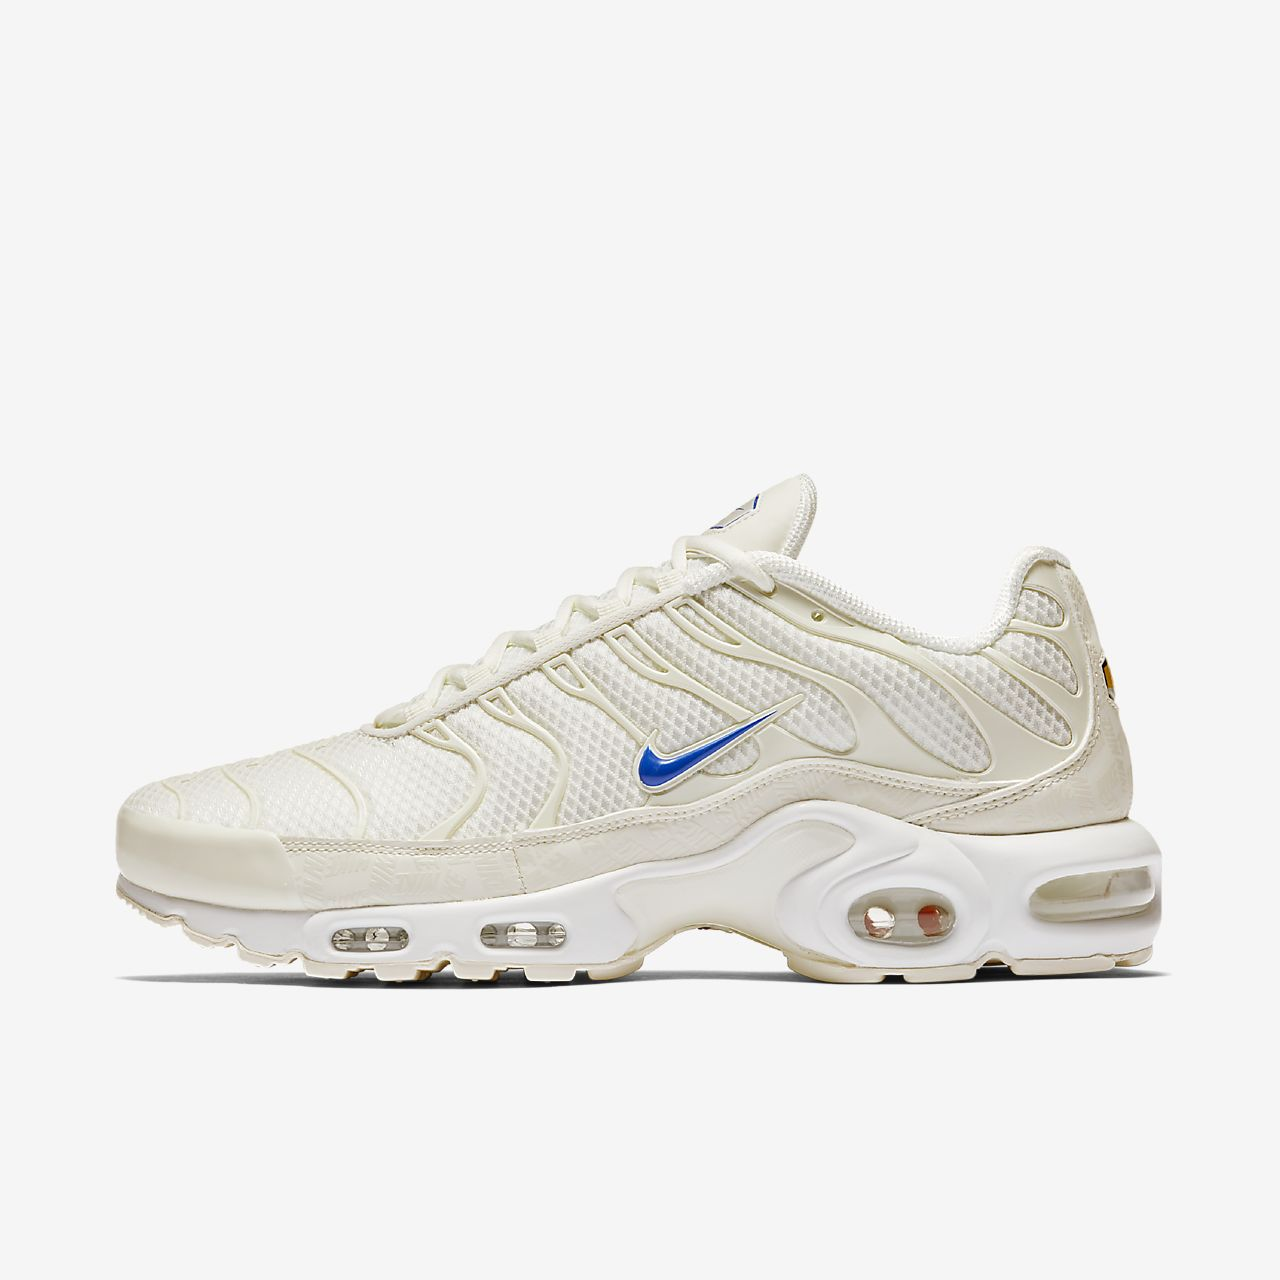 new product ea843 f538b ... reduced chaussure nike air max plus tn se pour homme af005 6b2e2